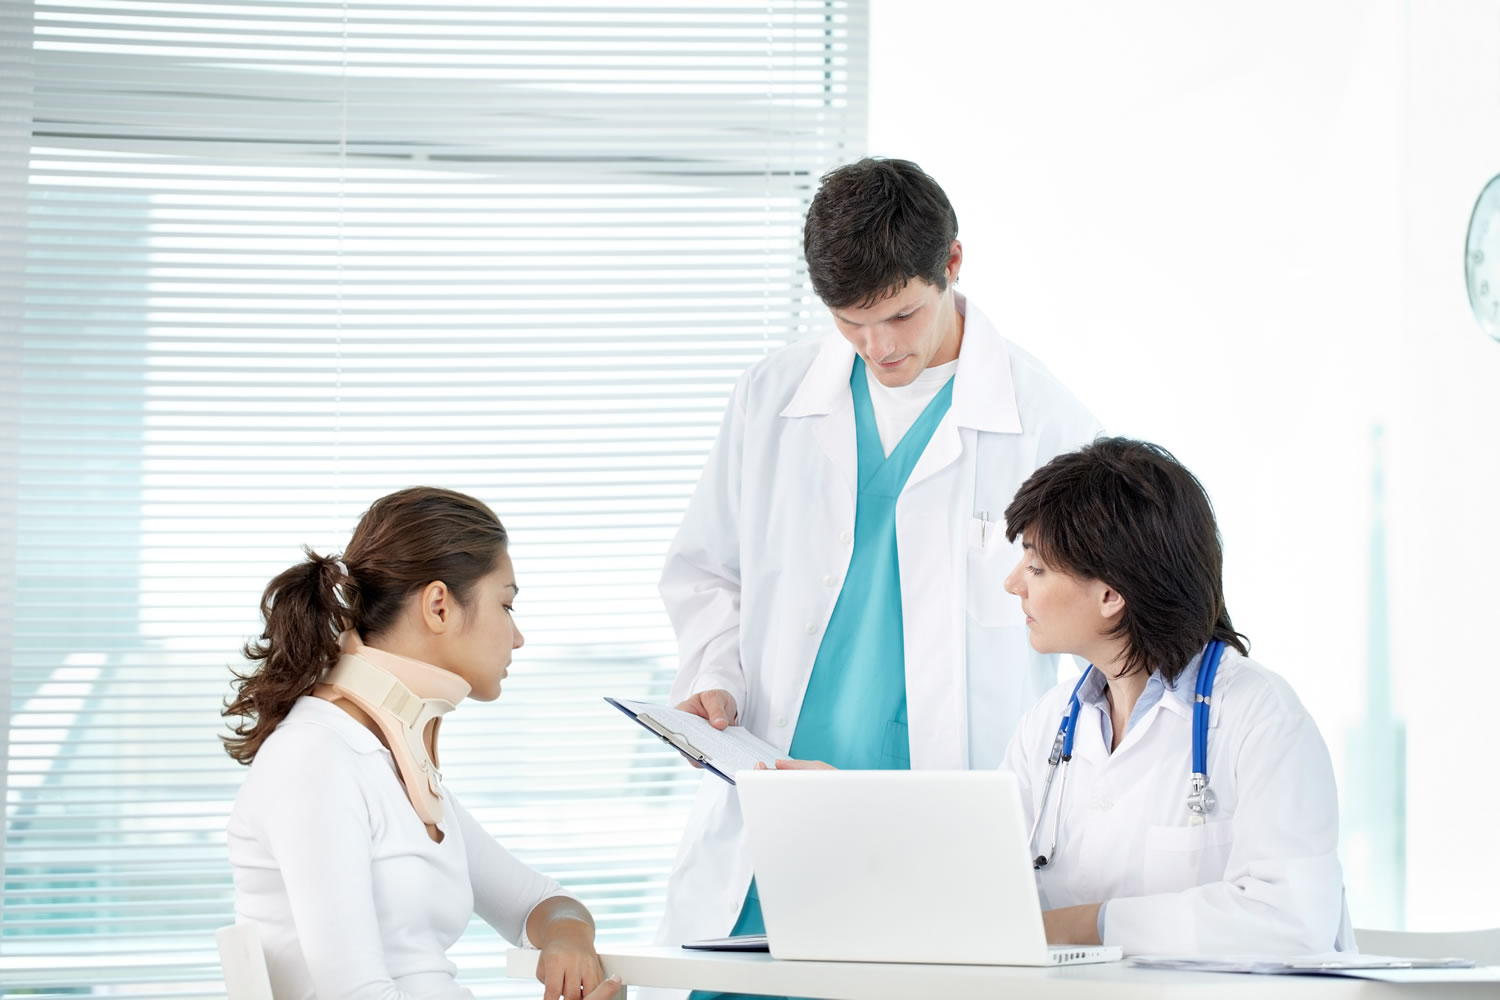 Doctors and patients at Ambulatory Surgery Center